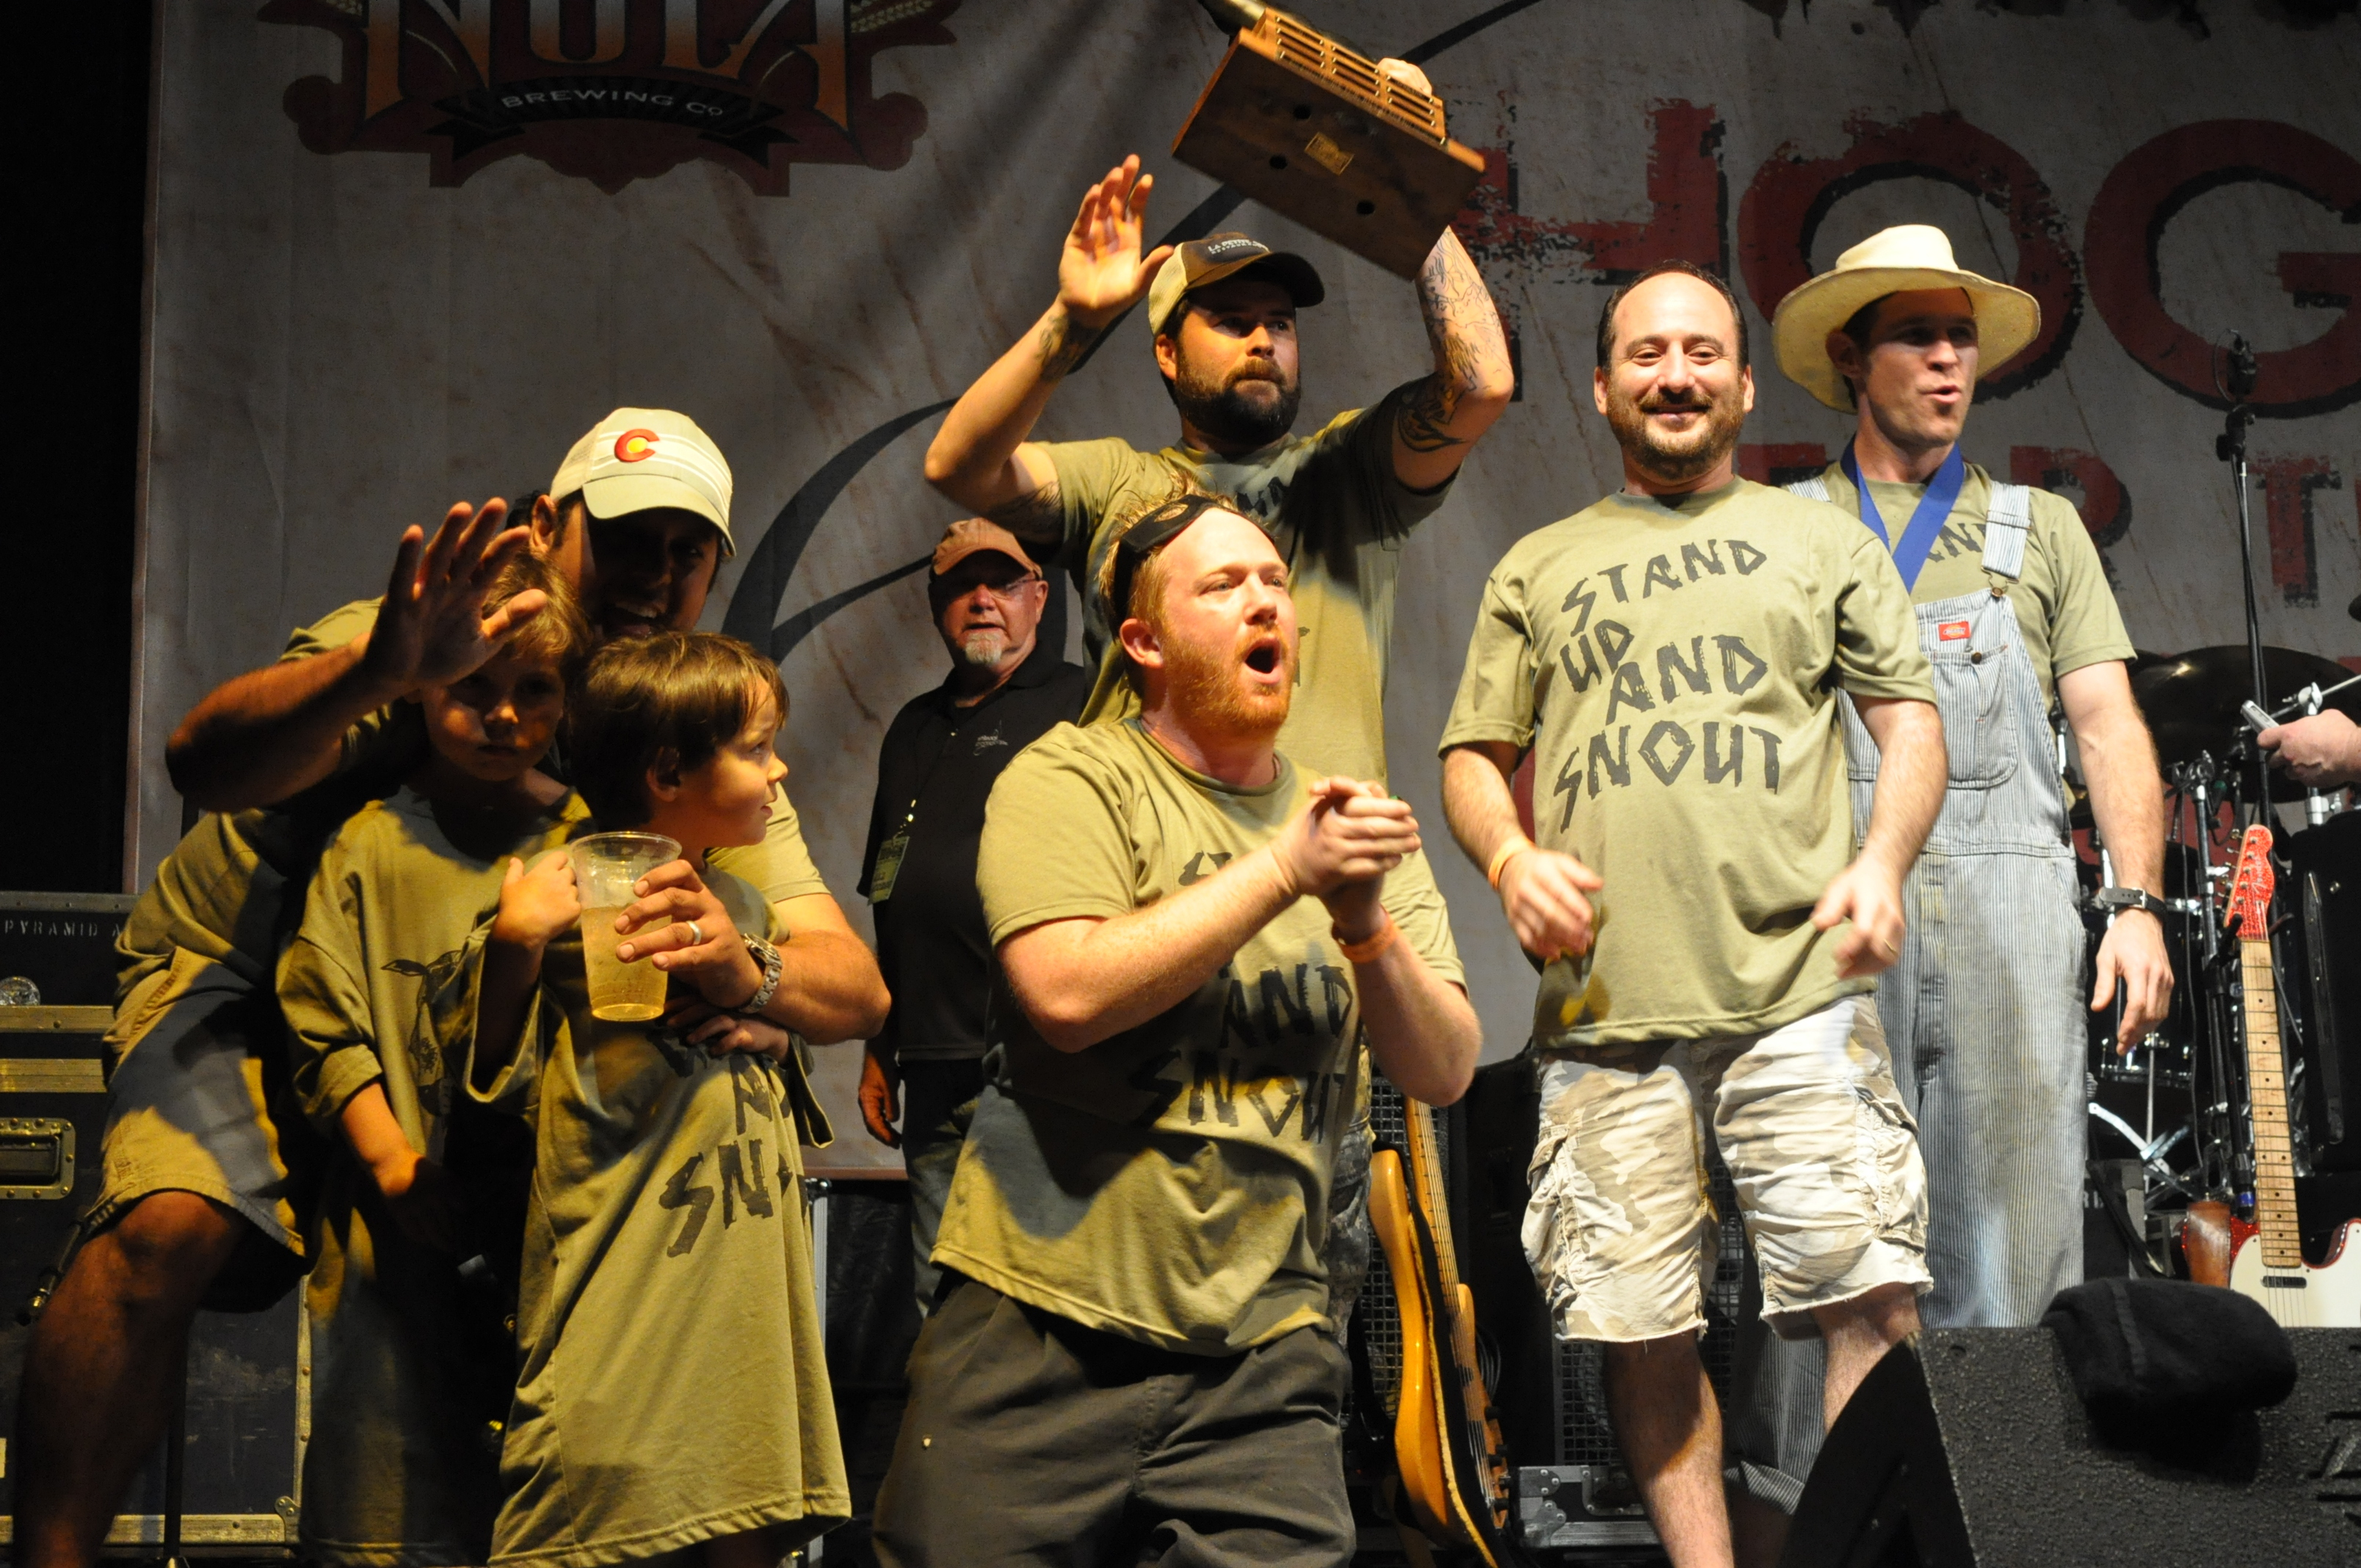 The Stand Up and Snout crew, receiving their Grand Champion award at 2013's Hogs for the Cause